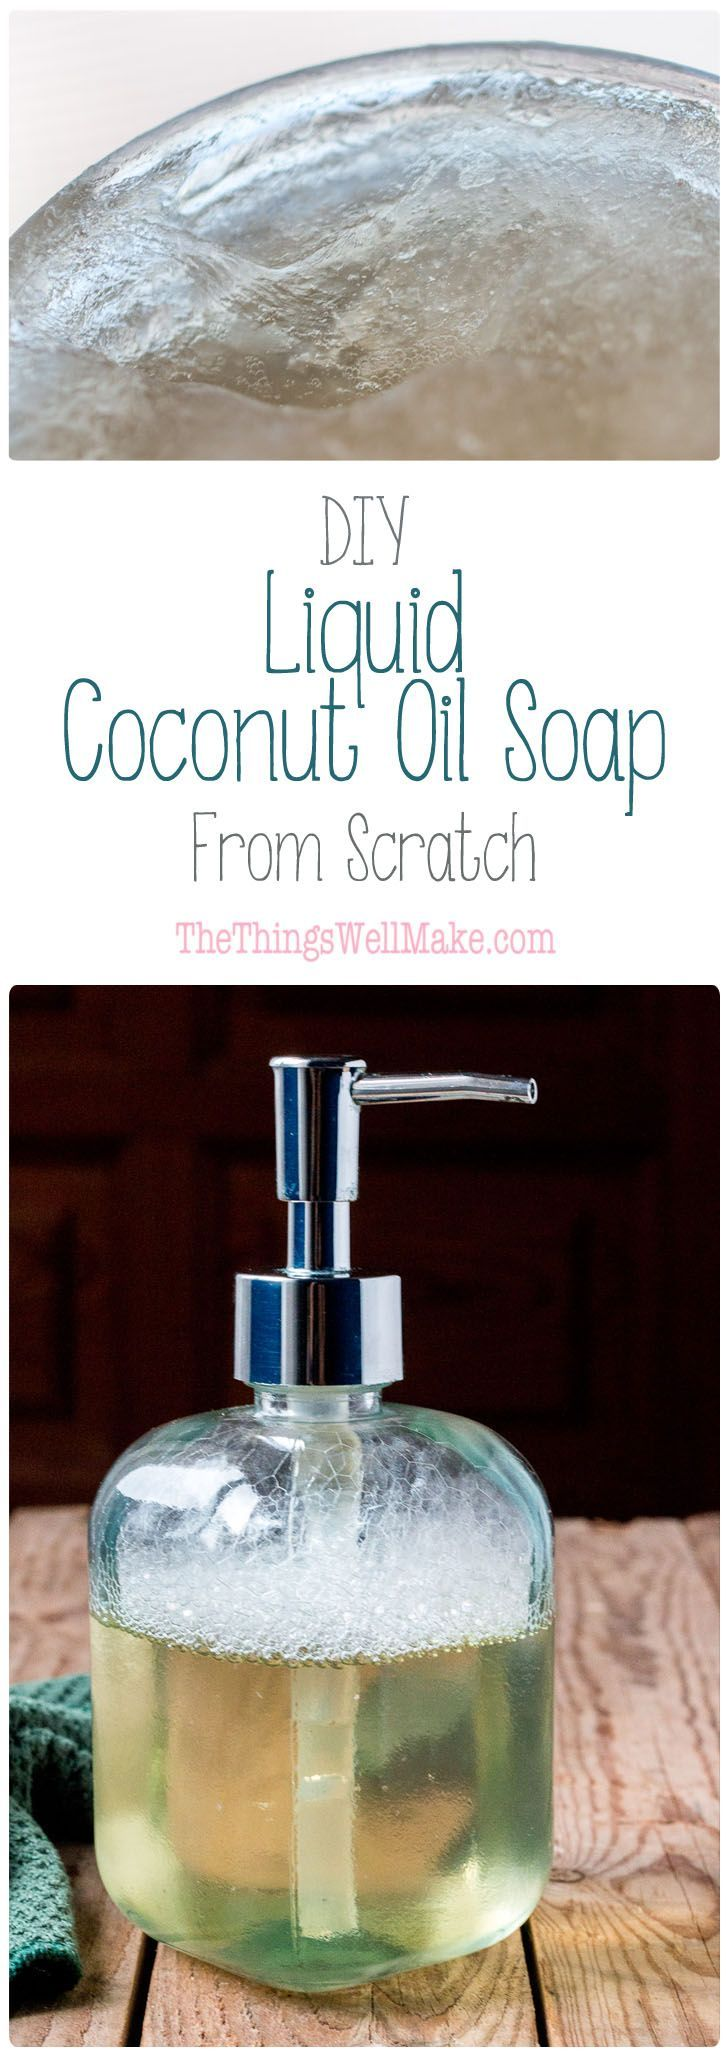 Making your own homemade liquid coconut oil soap is simple, thrifty, and very rewarding. Coconut oil soap provides lots of lather and cleaning power for all purpose cleaning.                                                                                                                                                                                 More